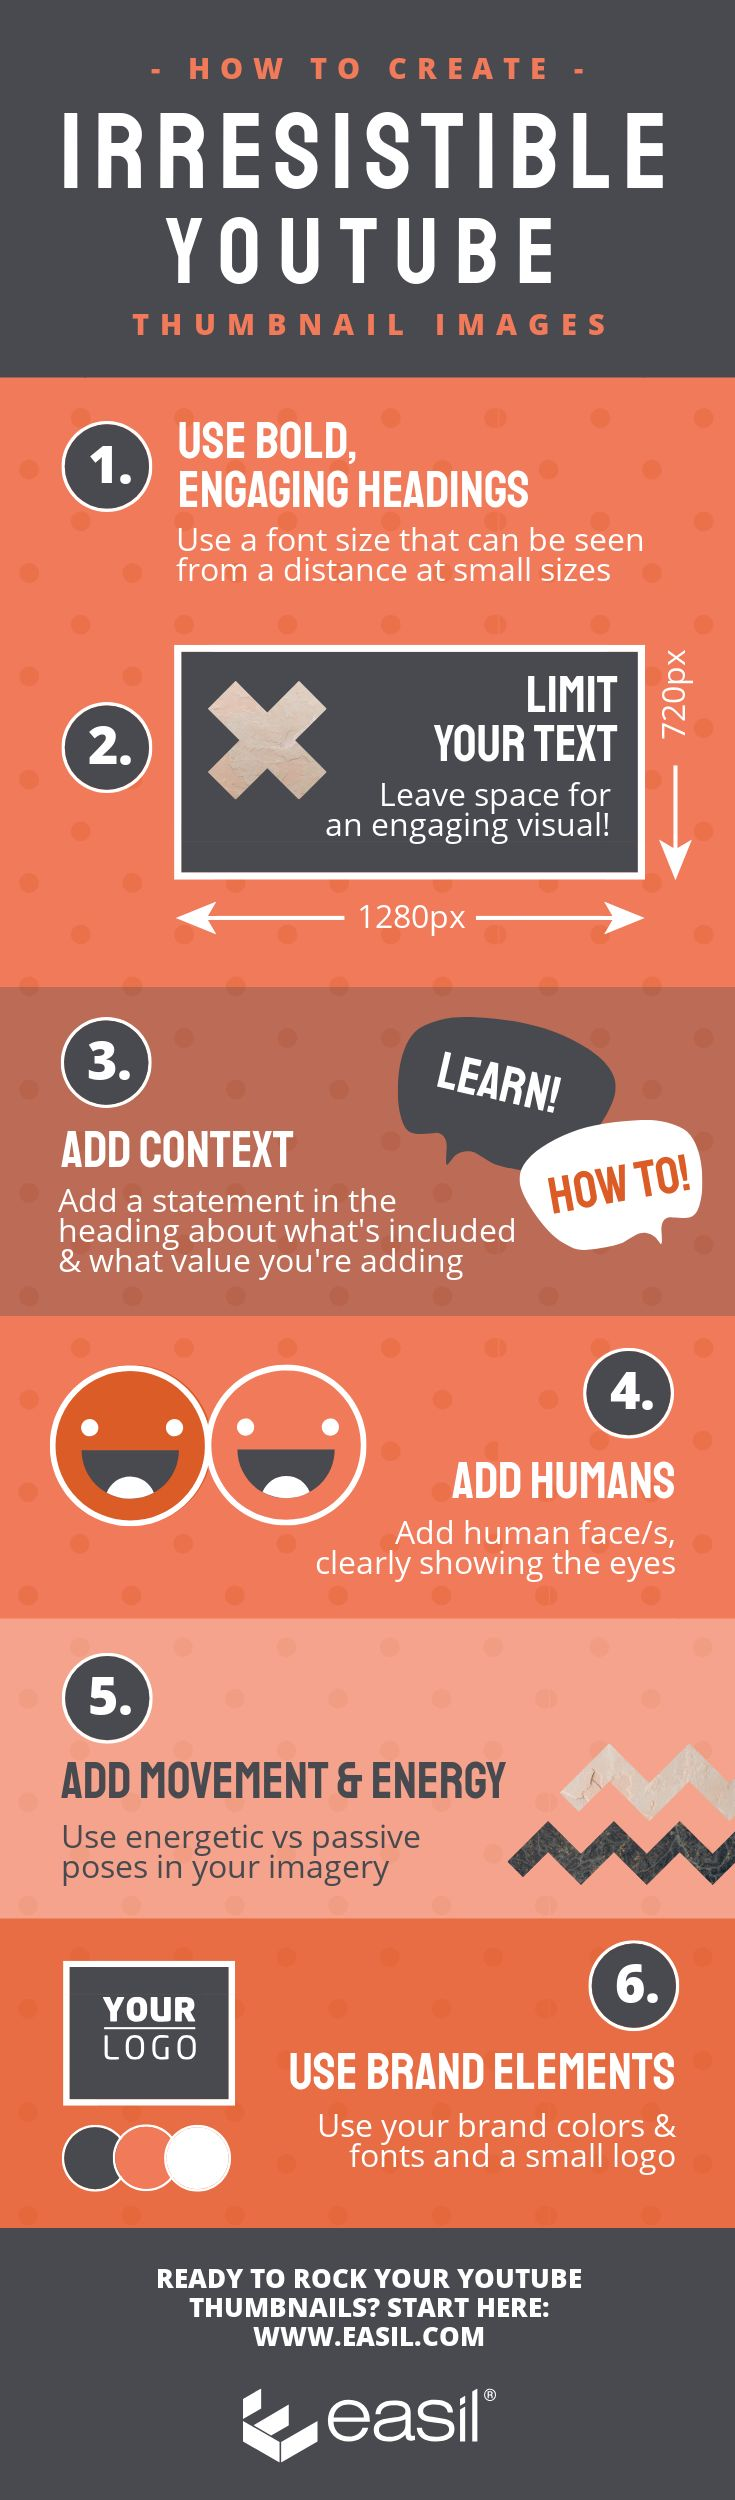 How to Create Irresistible YouTube Thumbnail Images Infographic